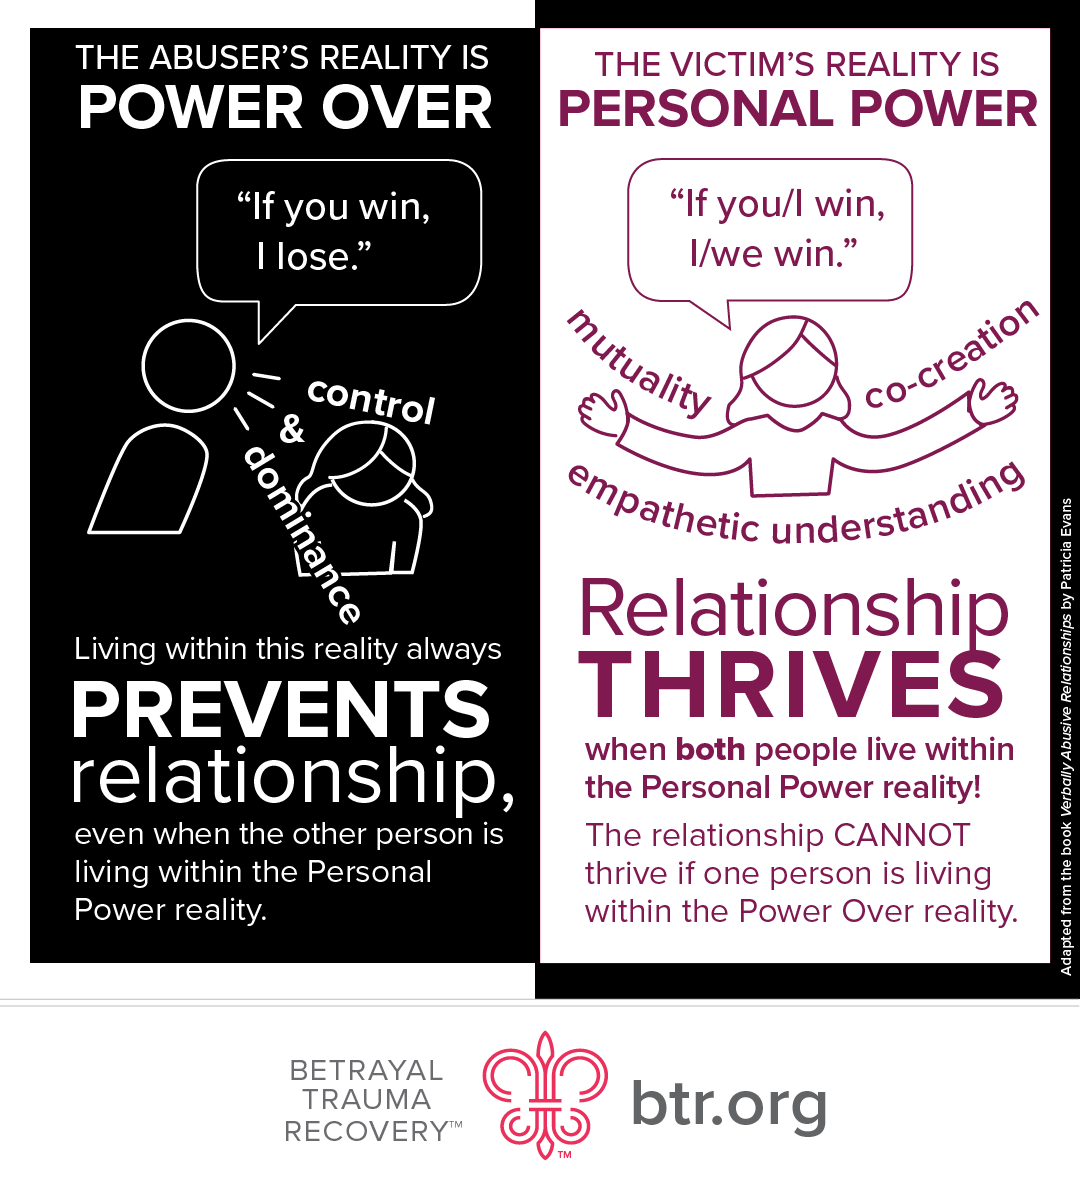 Abusers thrive on power over and control over others. A healthy relationship thrives on mutuality and both people having personal power.